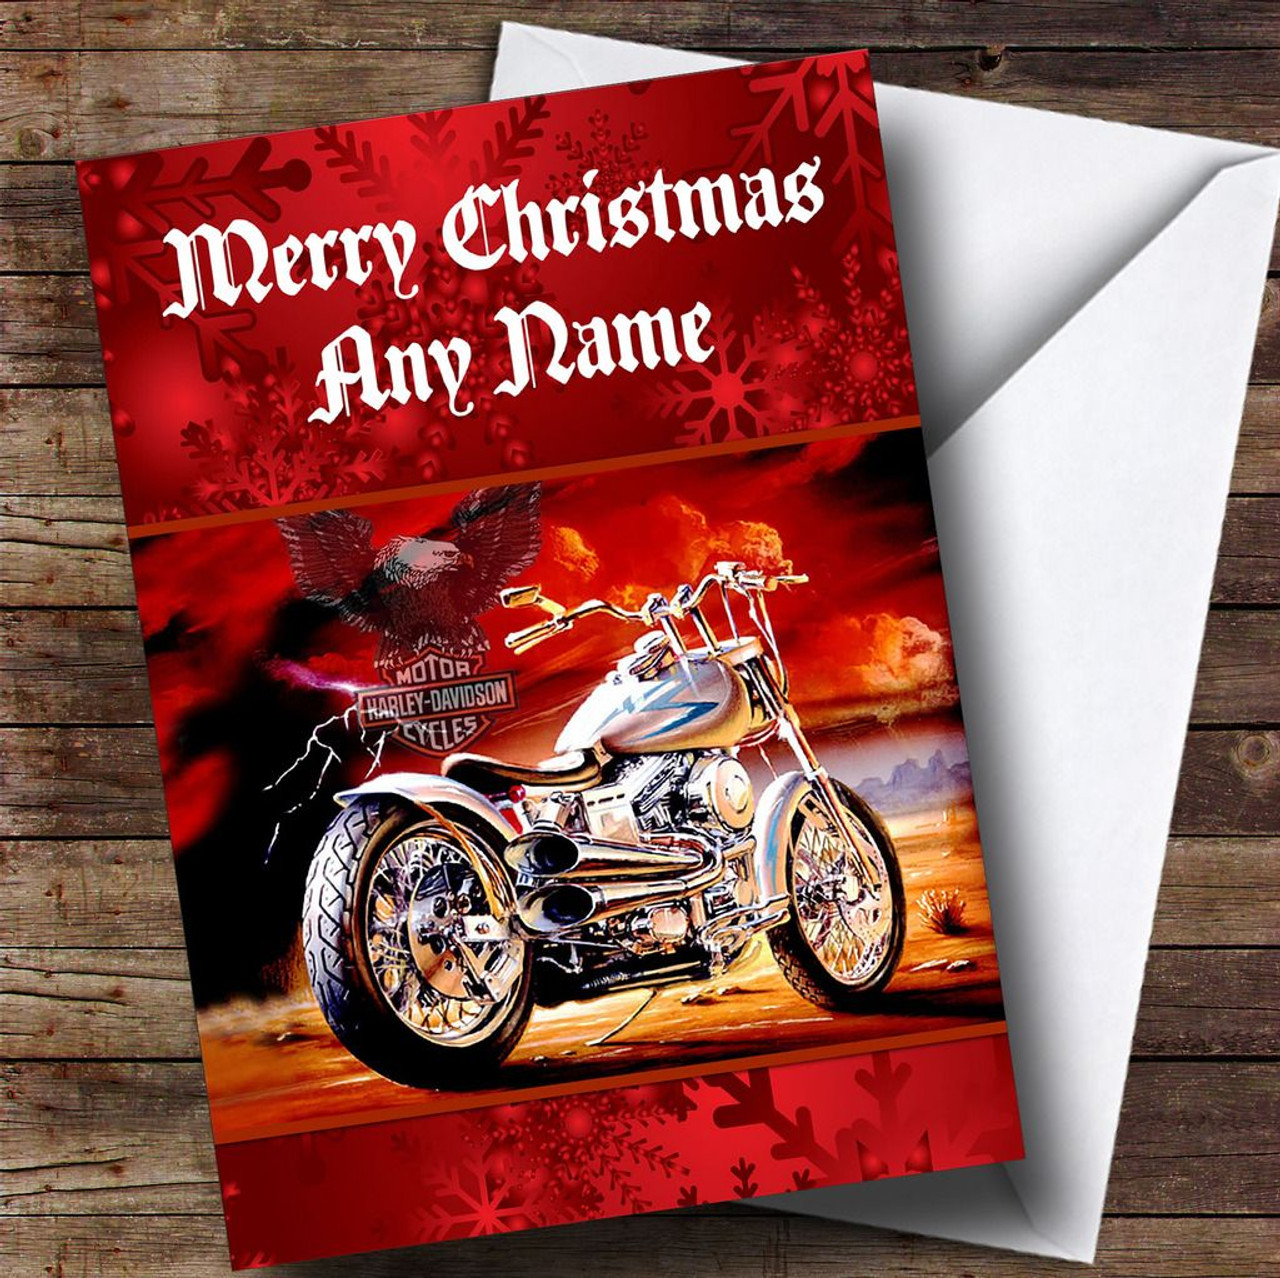 Red Harley Davidson Motorbike Personalised Christmas Card - The Card Zoo